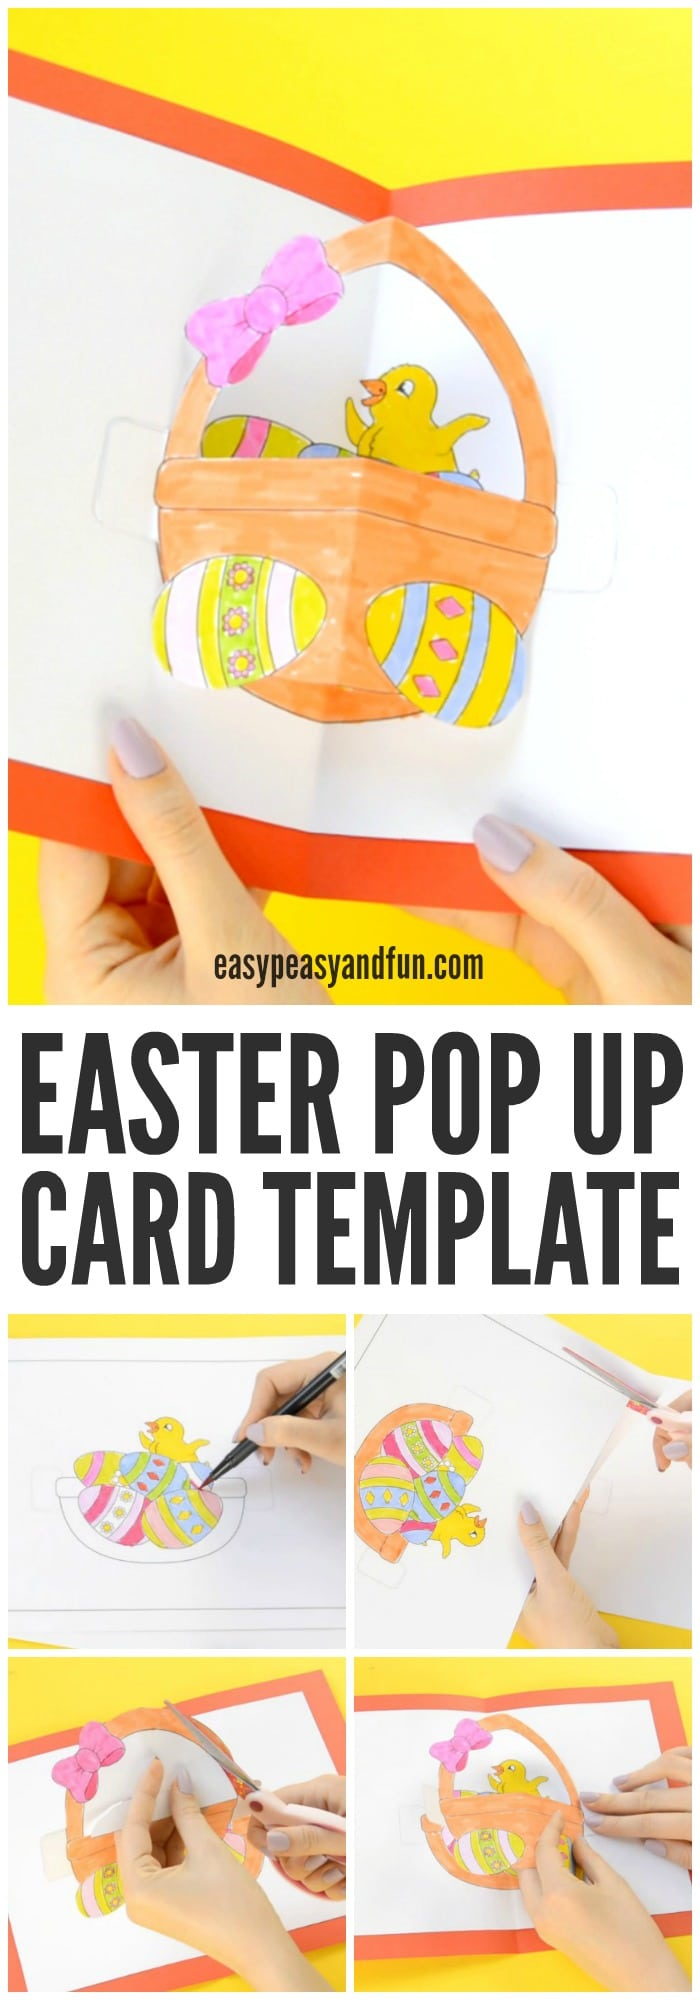 Adorable DIY Easter Pop Up Card Craft for Kids